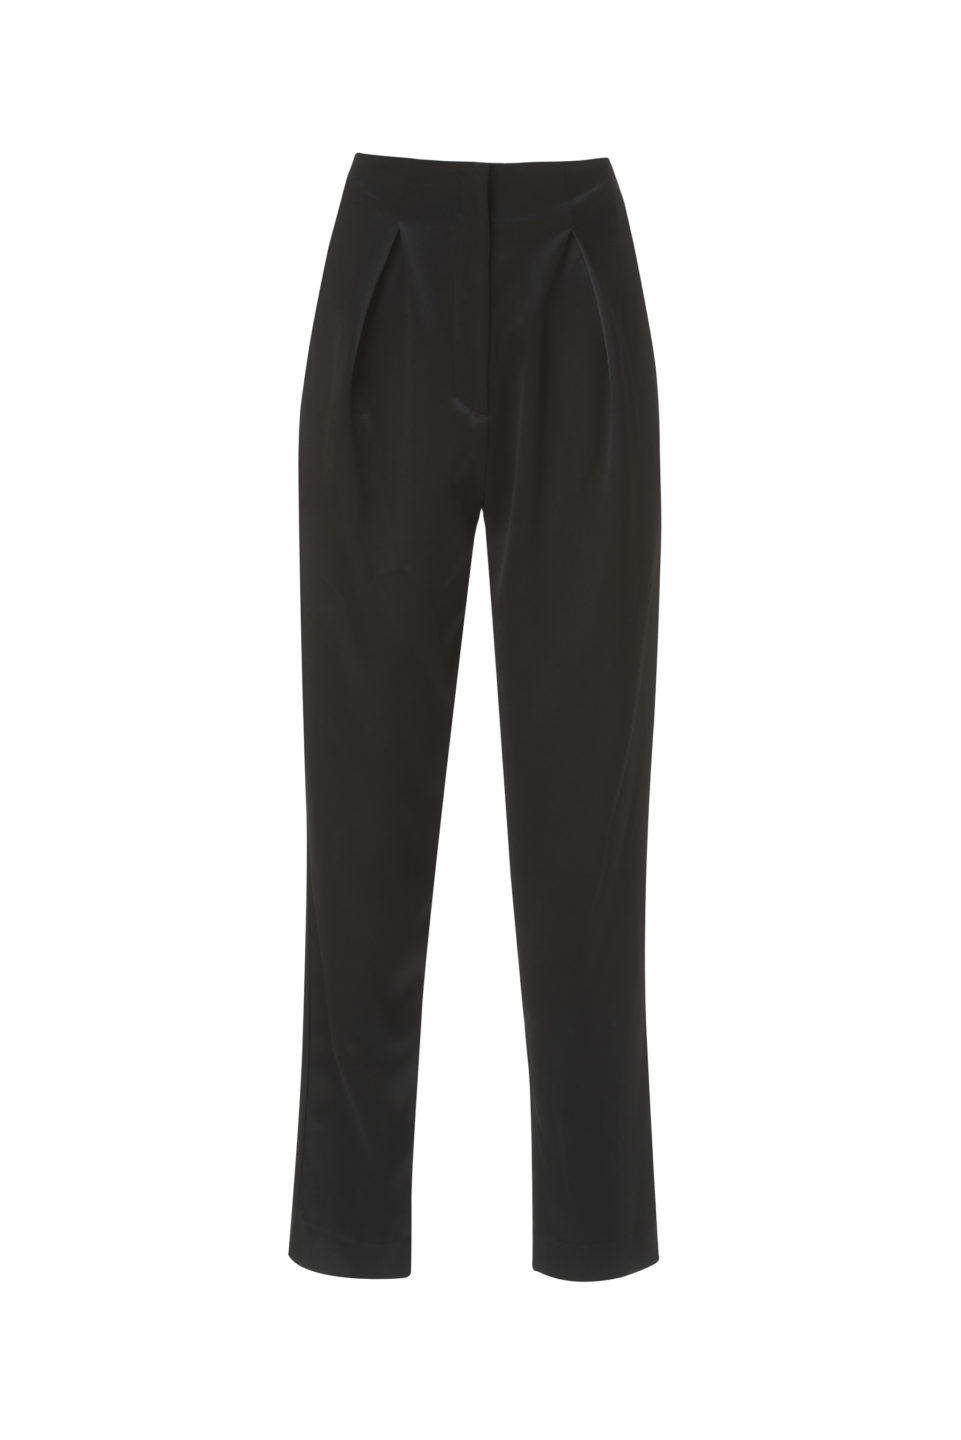 Hollis PS2135 Black Satin High-Waisted Tapered Pants with Pleated Detail